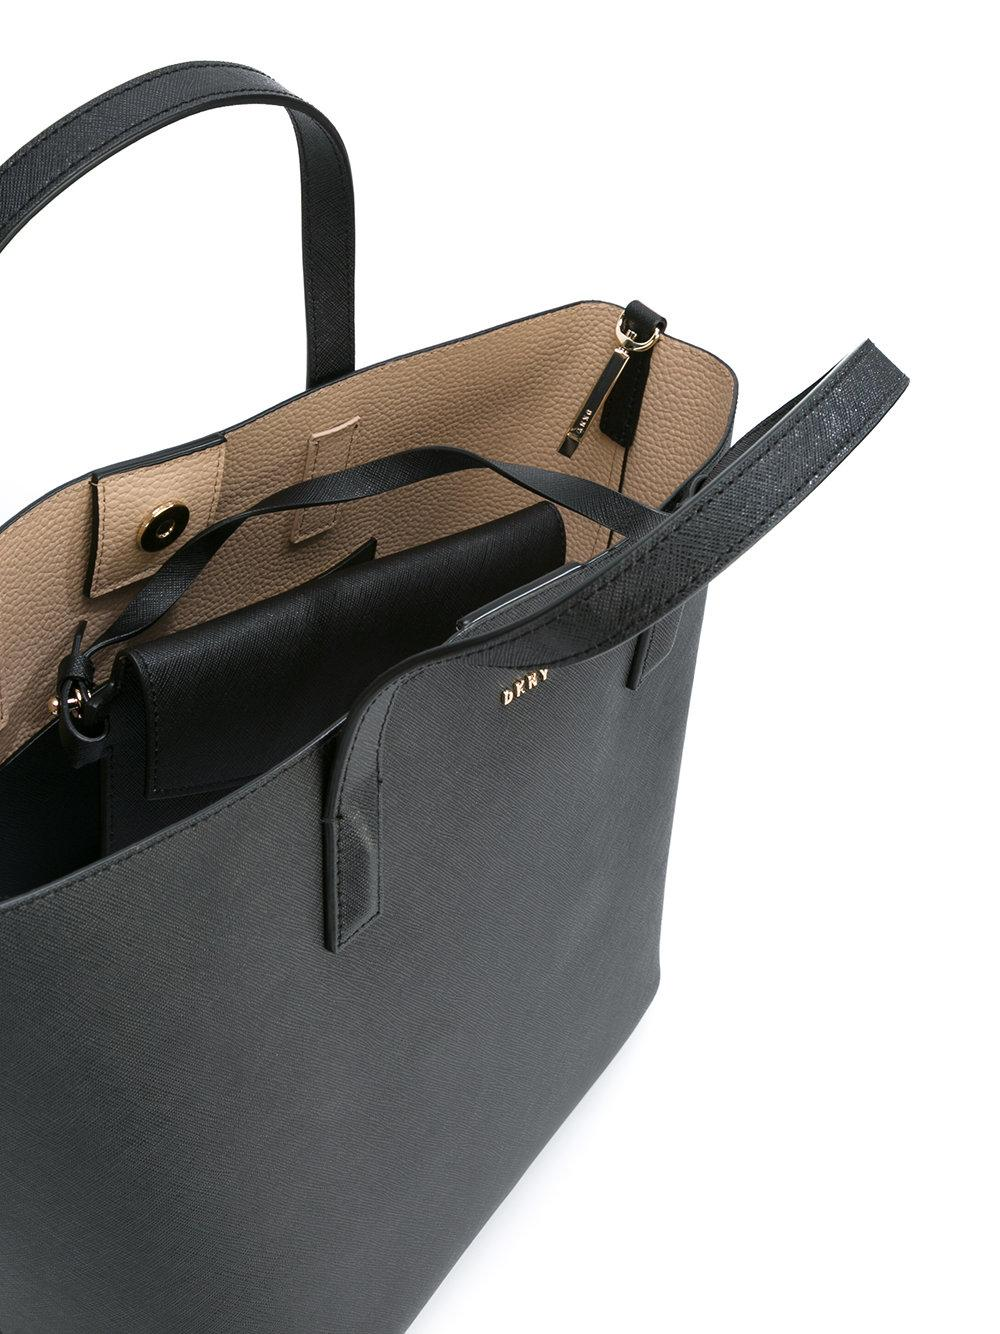 DKNY Leather Logo Plaque Tote Bag in Black